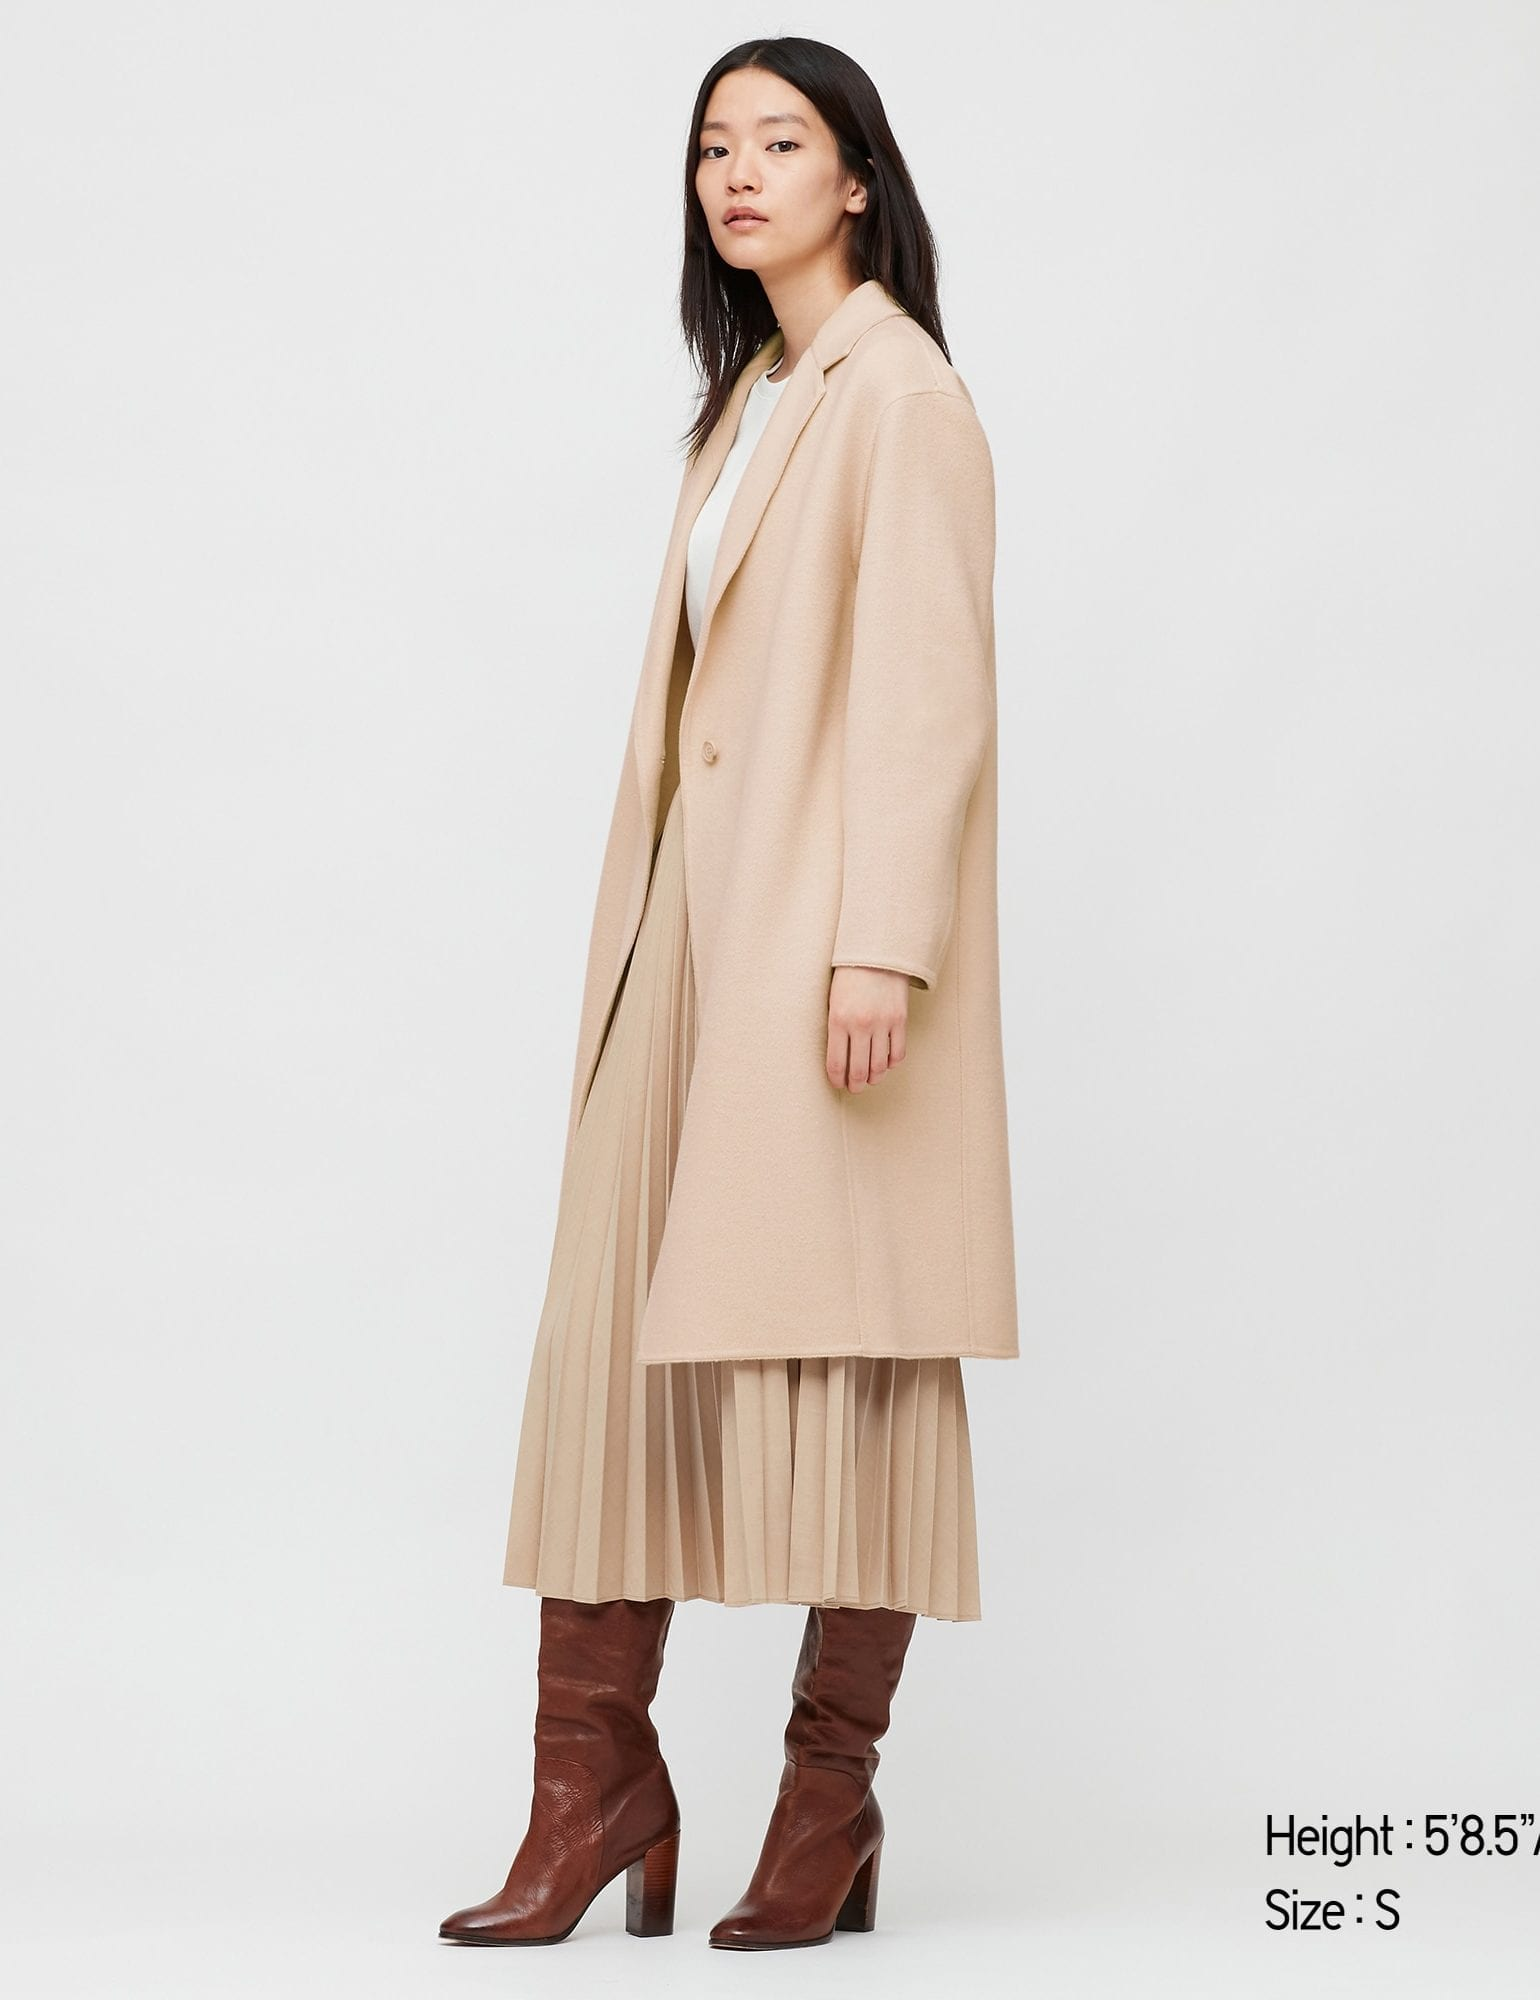 Uniqlo: Limited Time Prices for Coats & more